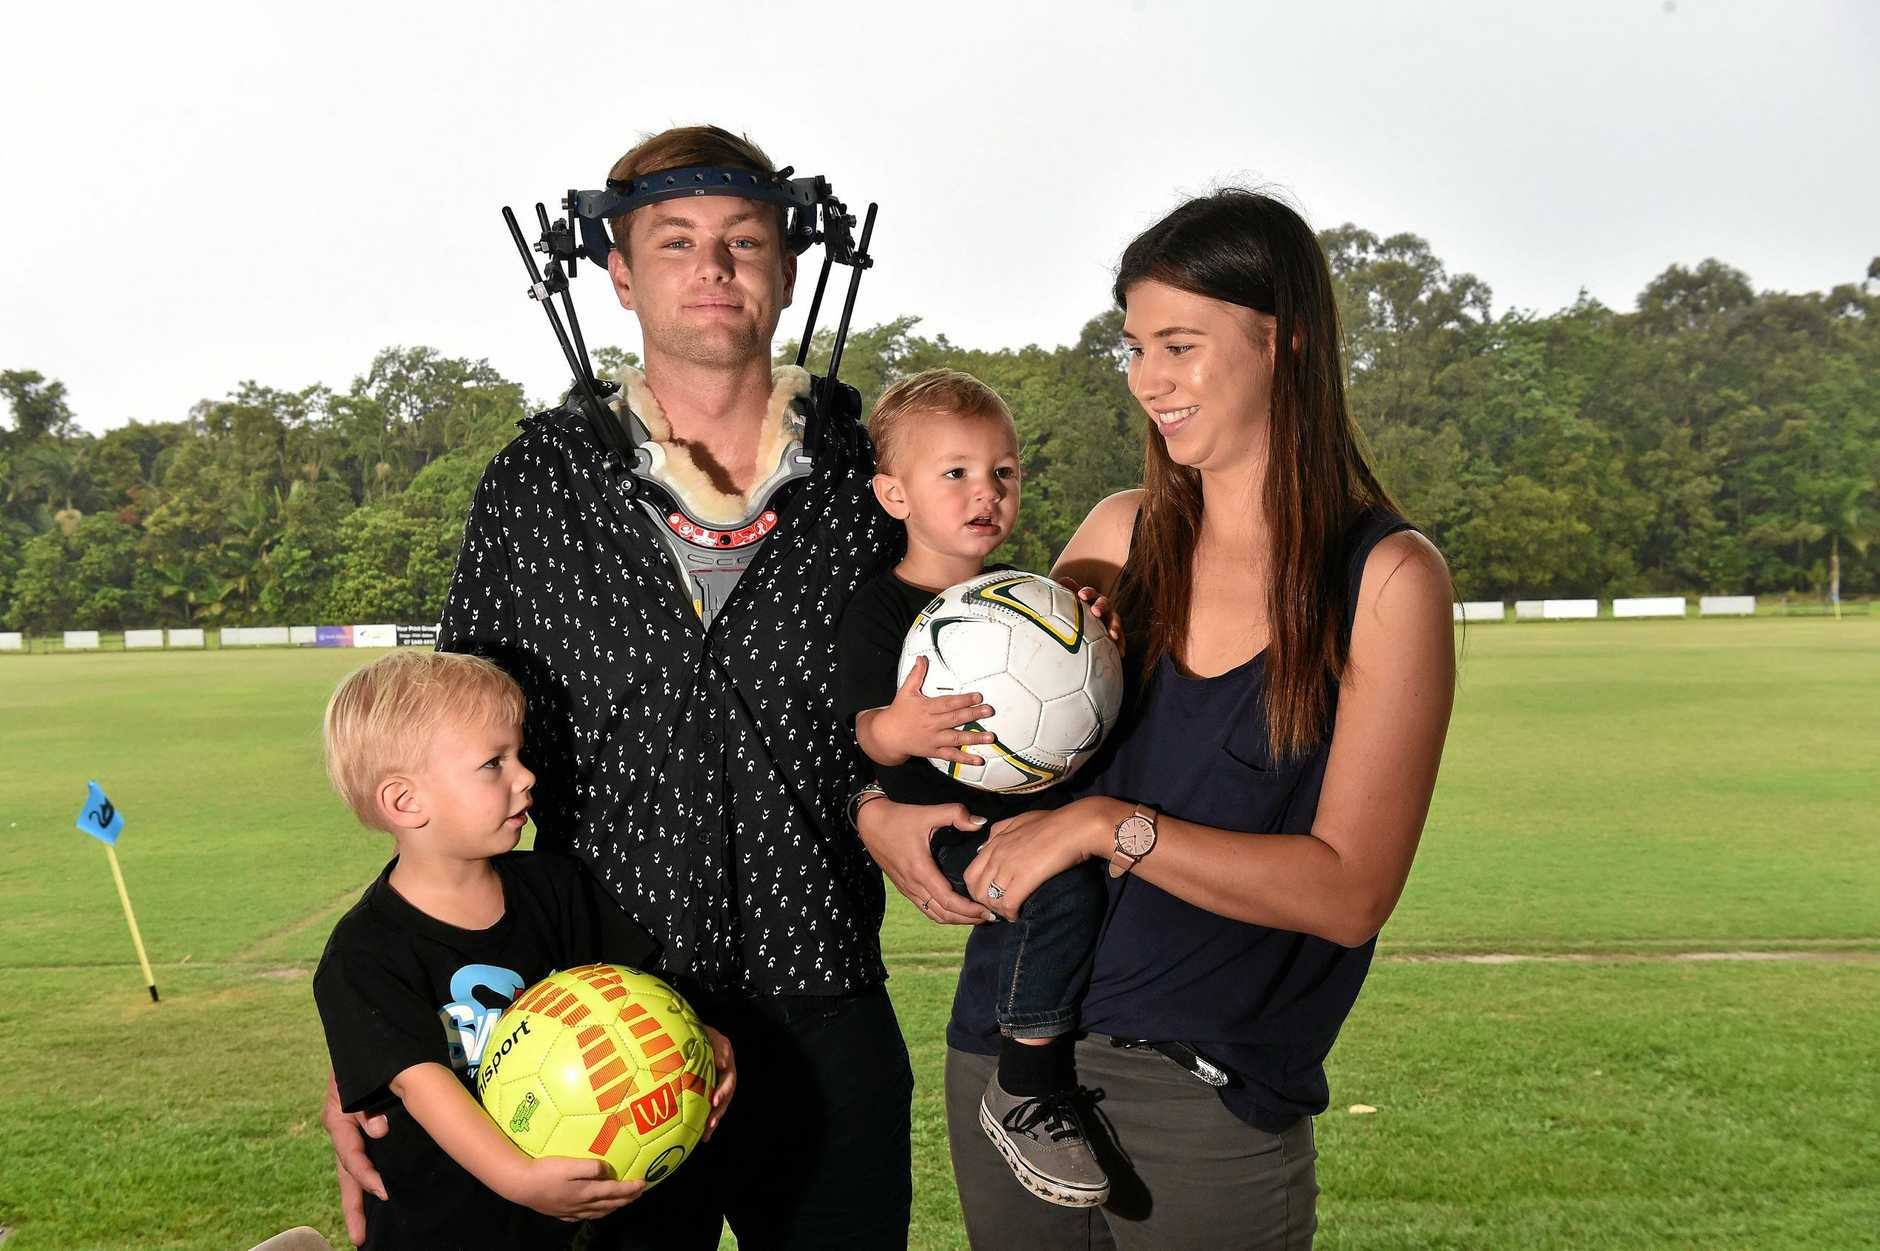 A major fundraiser has been organised for Tim Cornthwaite and his family after Tim broke his neck at his bucks party.Luca,2, (left) and Theo,15 months, are looking forward to the match with their dad Tim and mum Chloe.